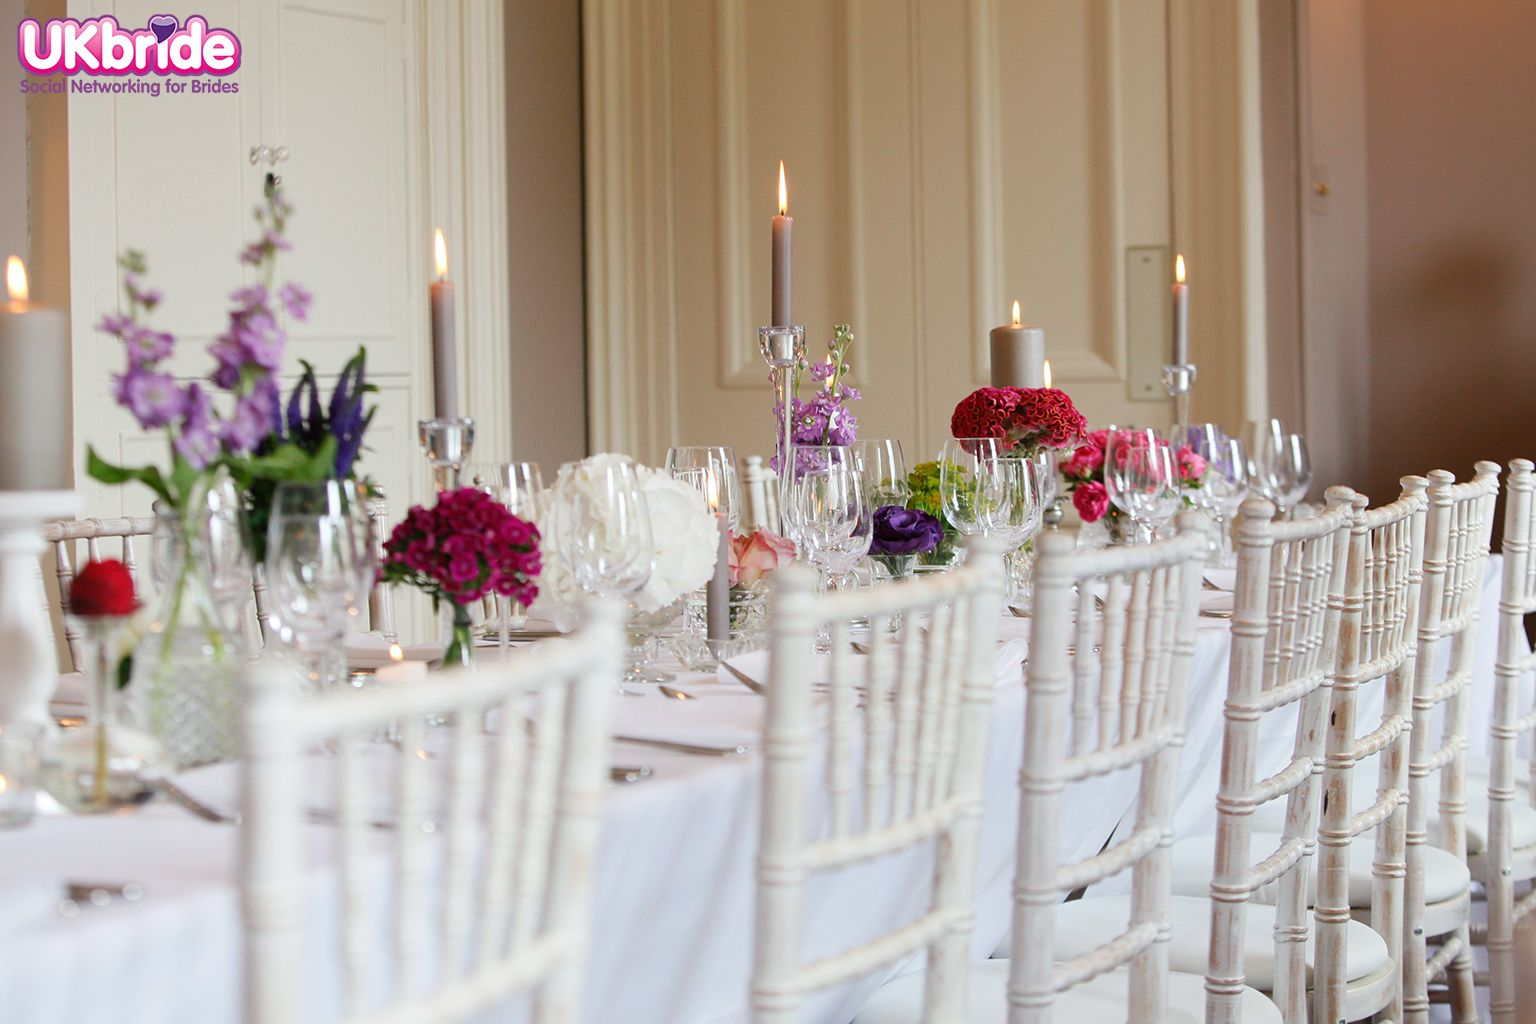 Stunning wedding table decorations by get knotted decorations visit stunning wedding table decorations by get knotted decorations visit http junglespirit Image collections